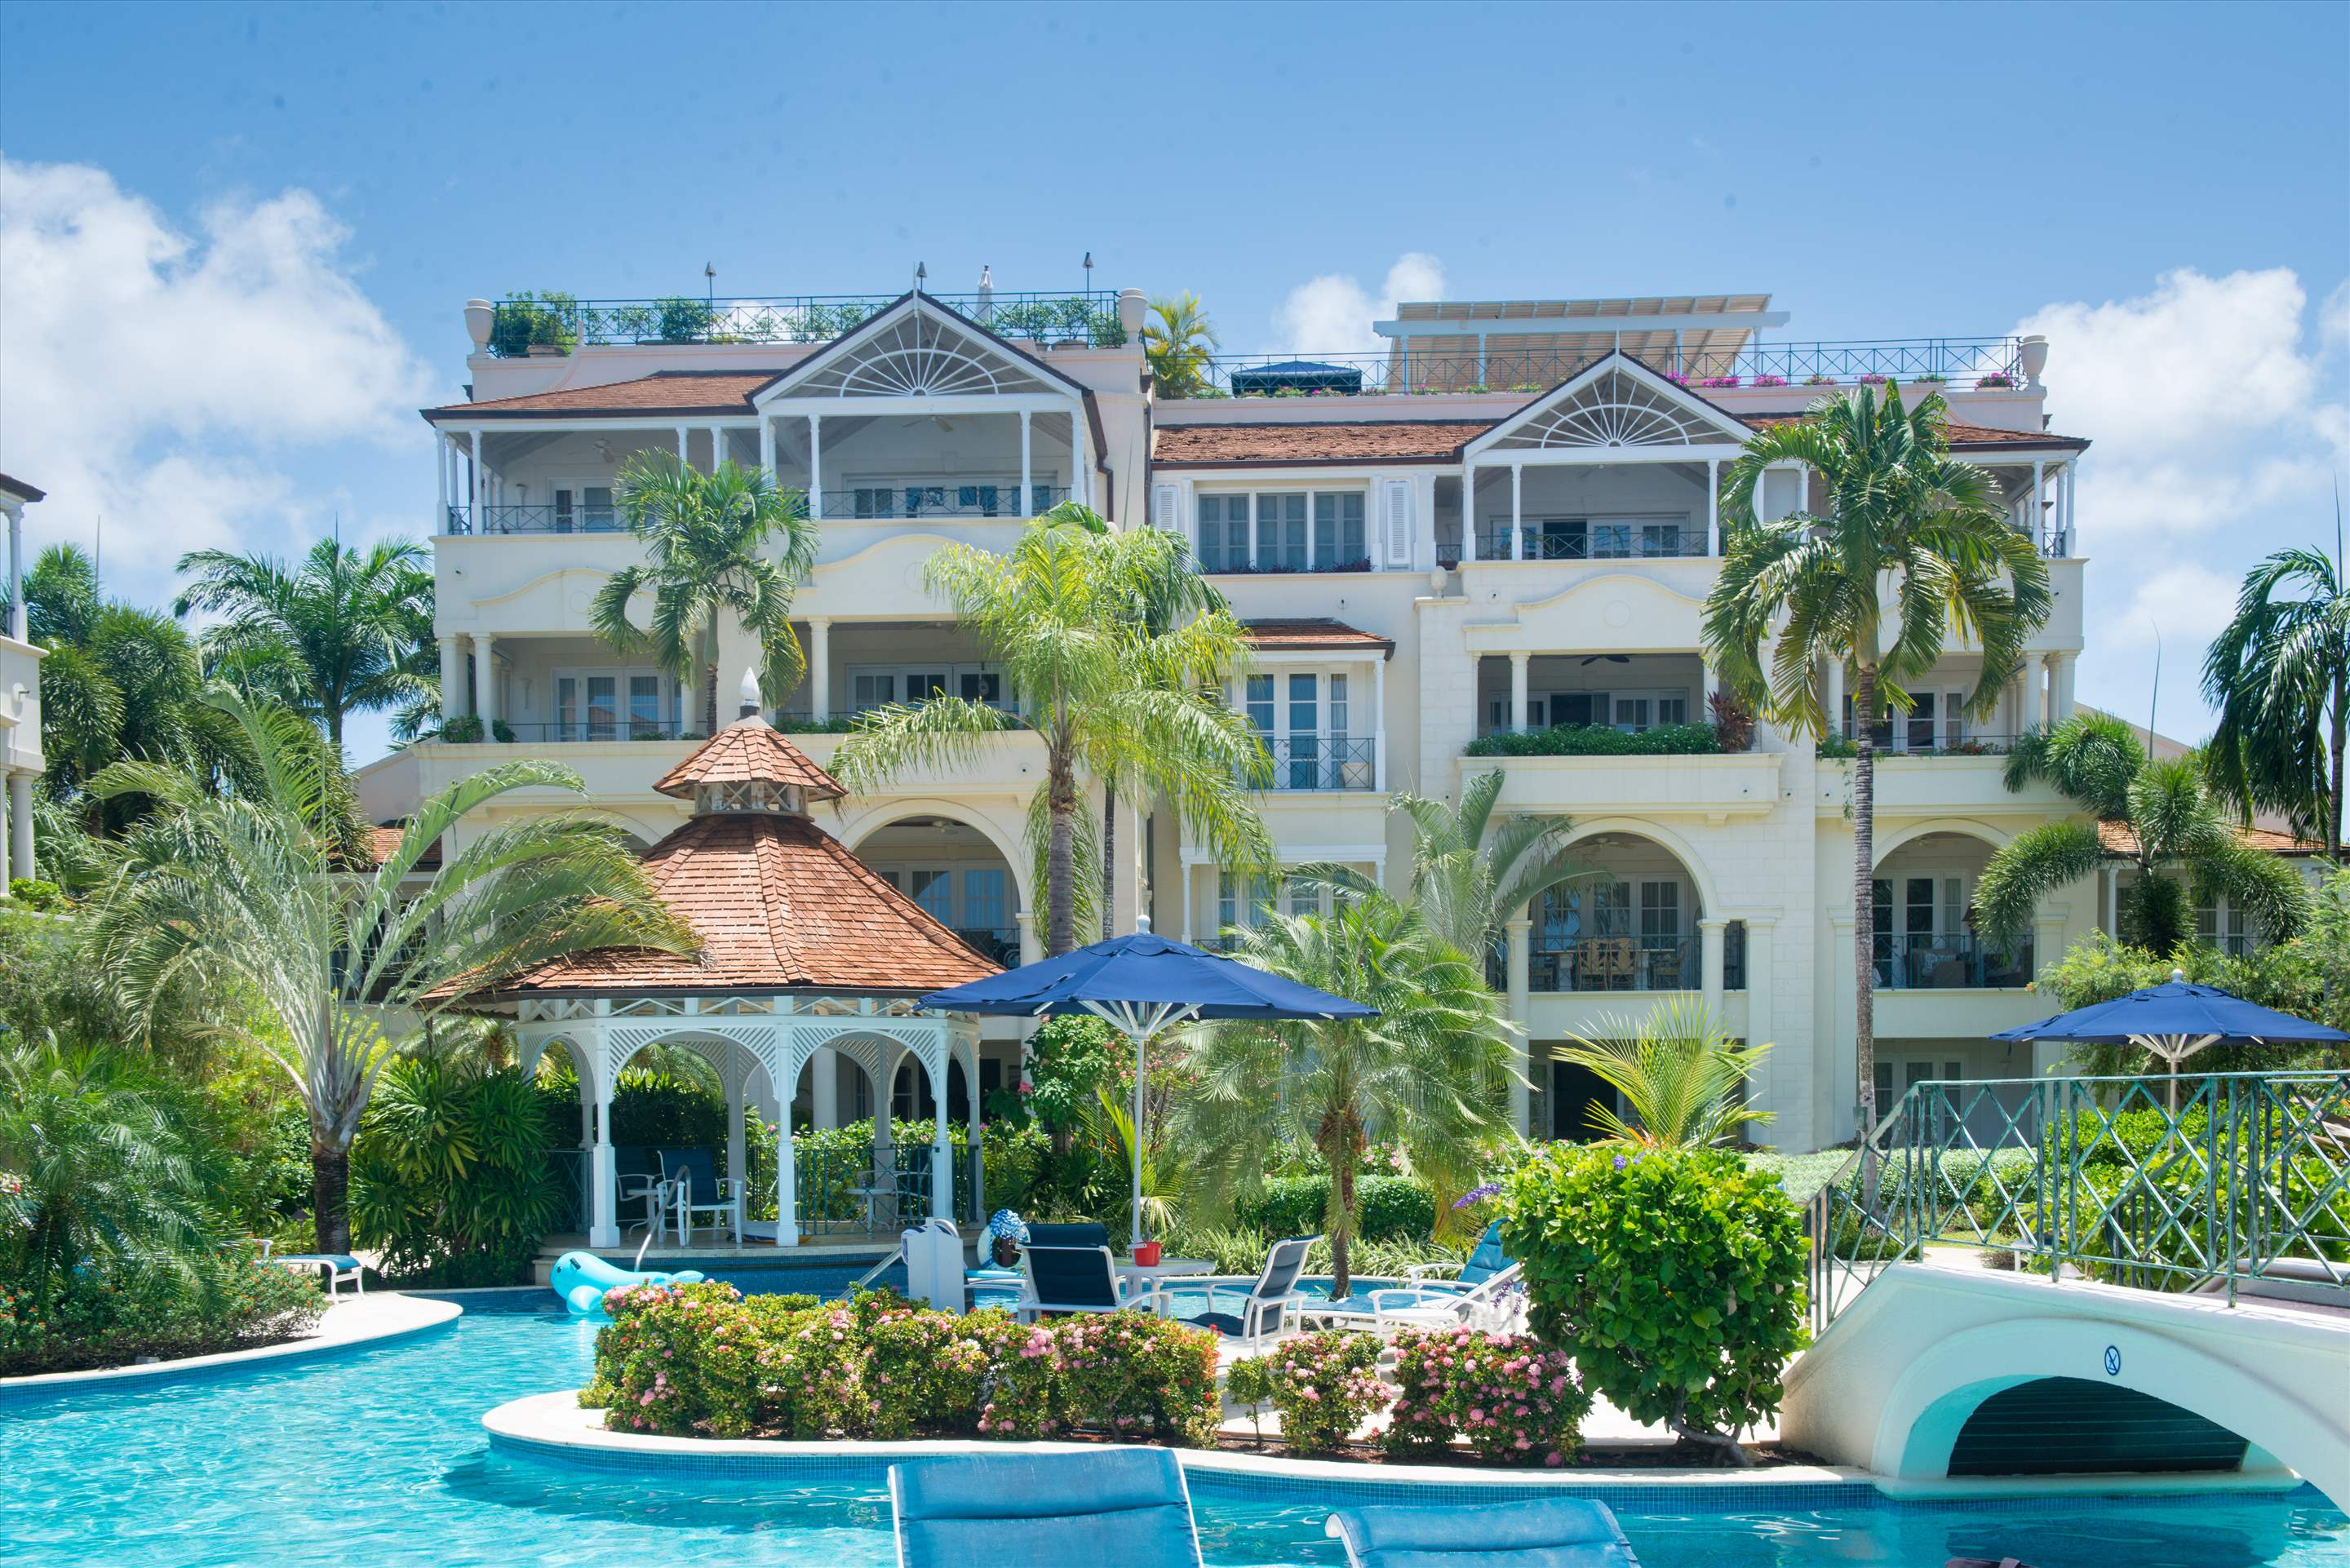 Schooner Bay 205, Two Bedroom rate, 2 bedroom apartment in St. James & West Coast, Barbados Photo #1